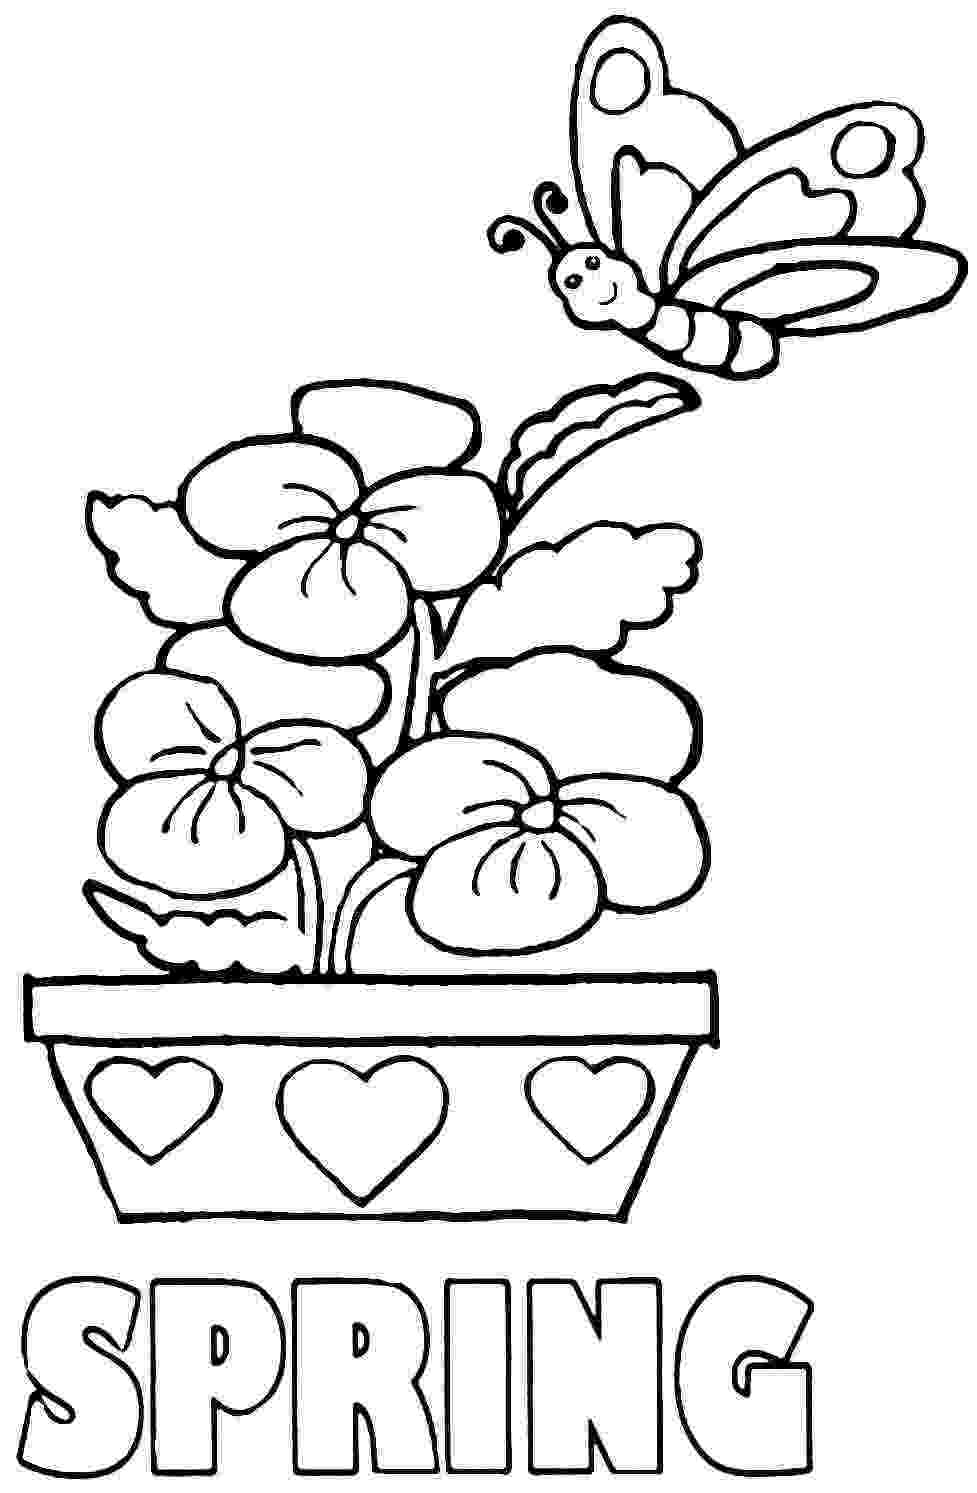 free printable coloring pictures of spring full size spring coloring sheets printable pictures spring free coloring of